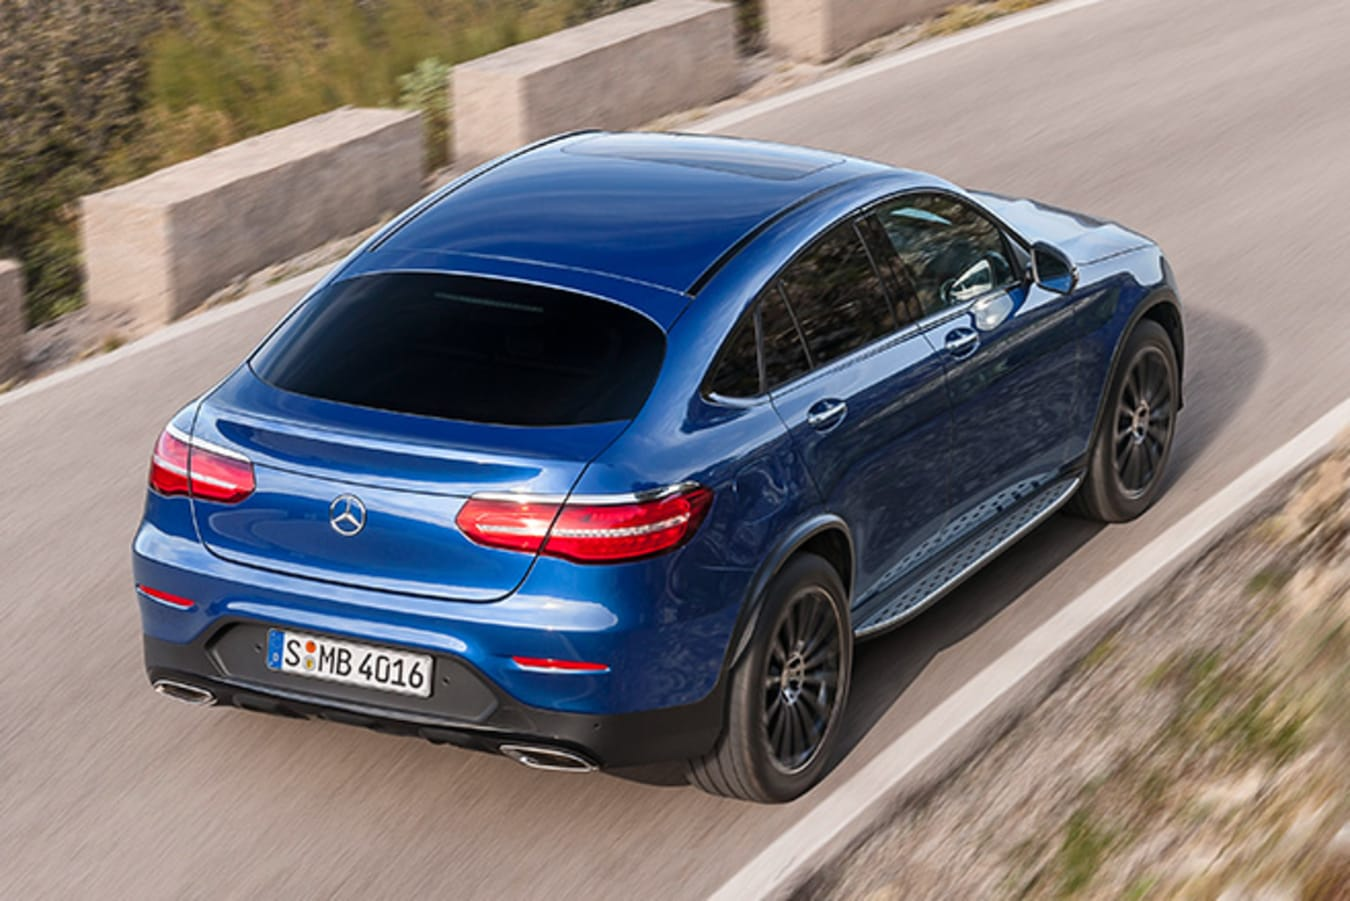 Mercedes-Benz GLC Coupe top side rear